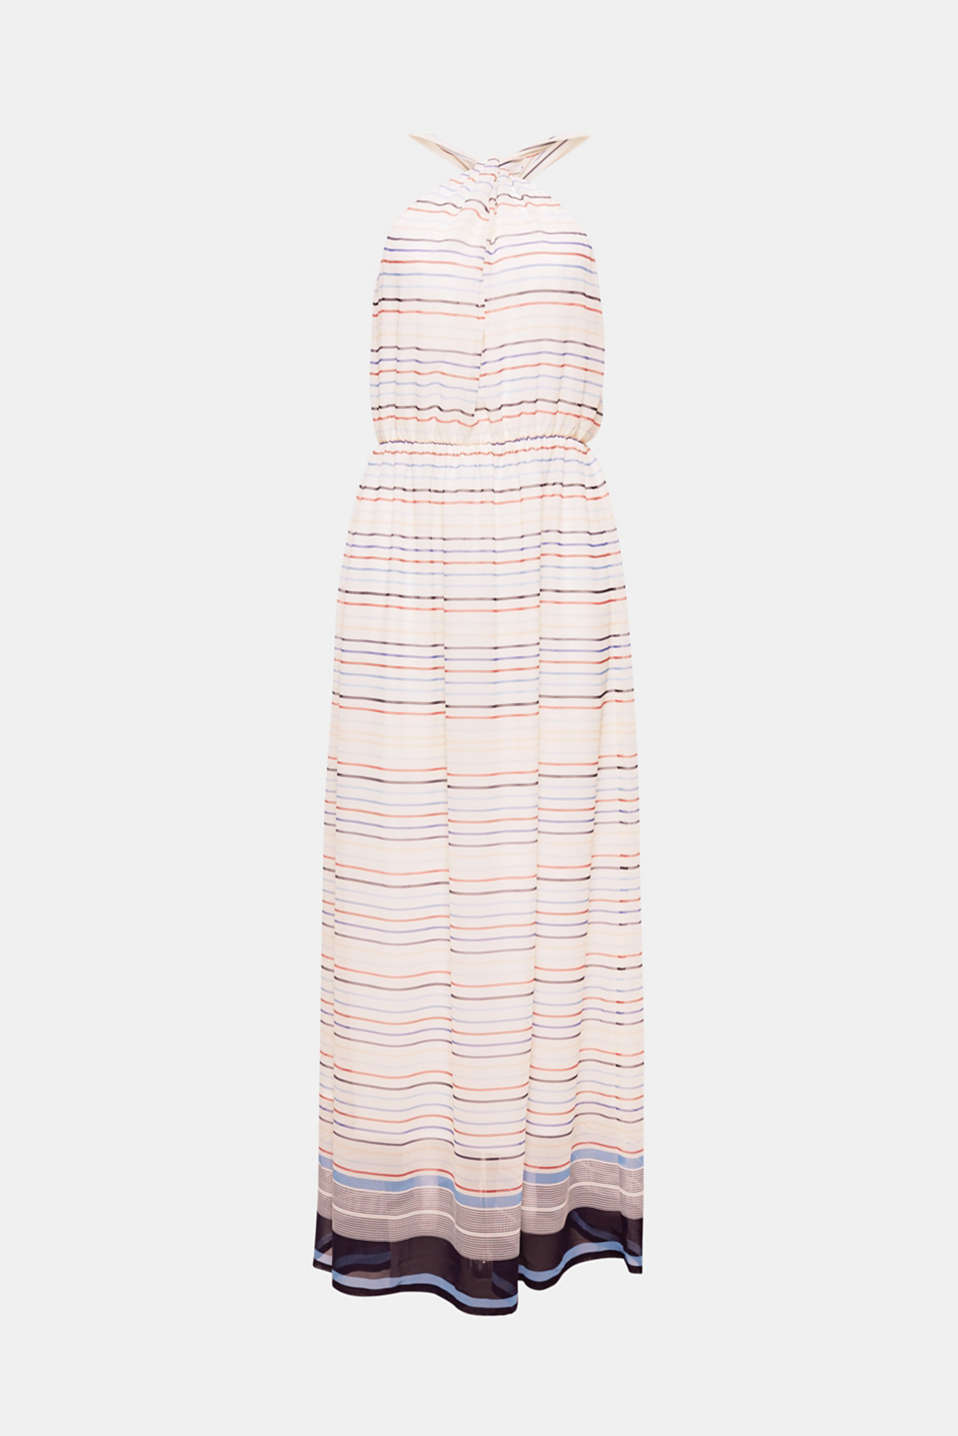 In delicate chiffon with a striped pattern and an off-the-shoulder halterneck design, this softly draped maxi dress has style and an extremely feminine flair!